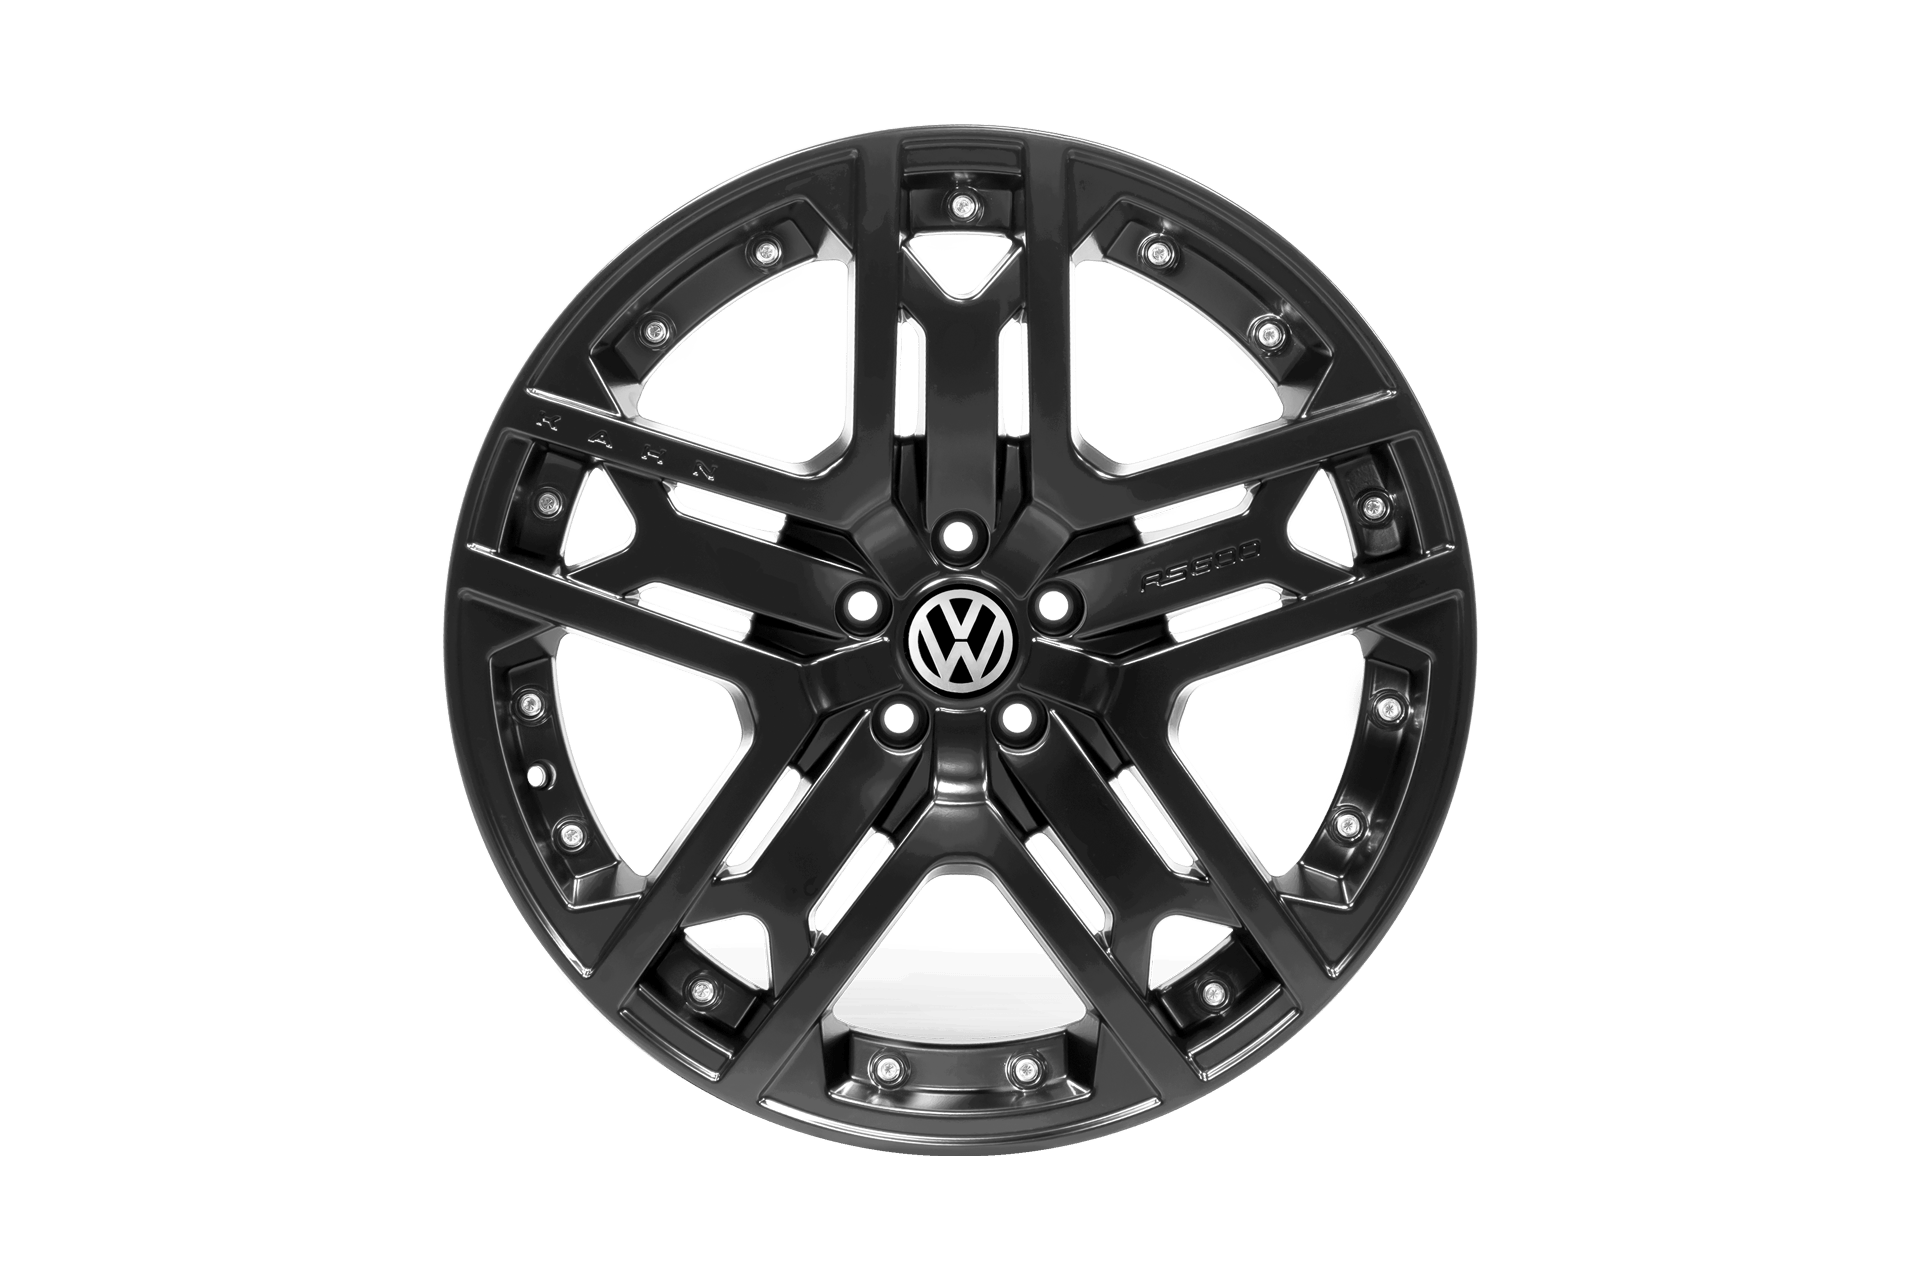 Volkswagen T5 (2003-2015) Rs600 Light Alloy Wheels by Kahn - Image 3042